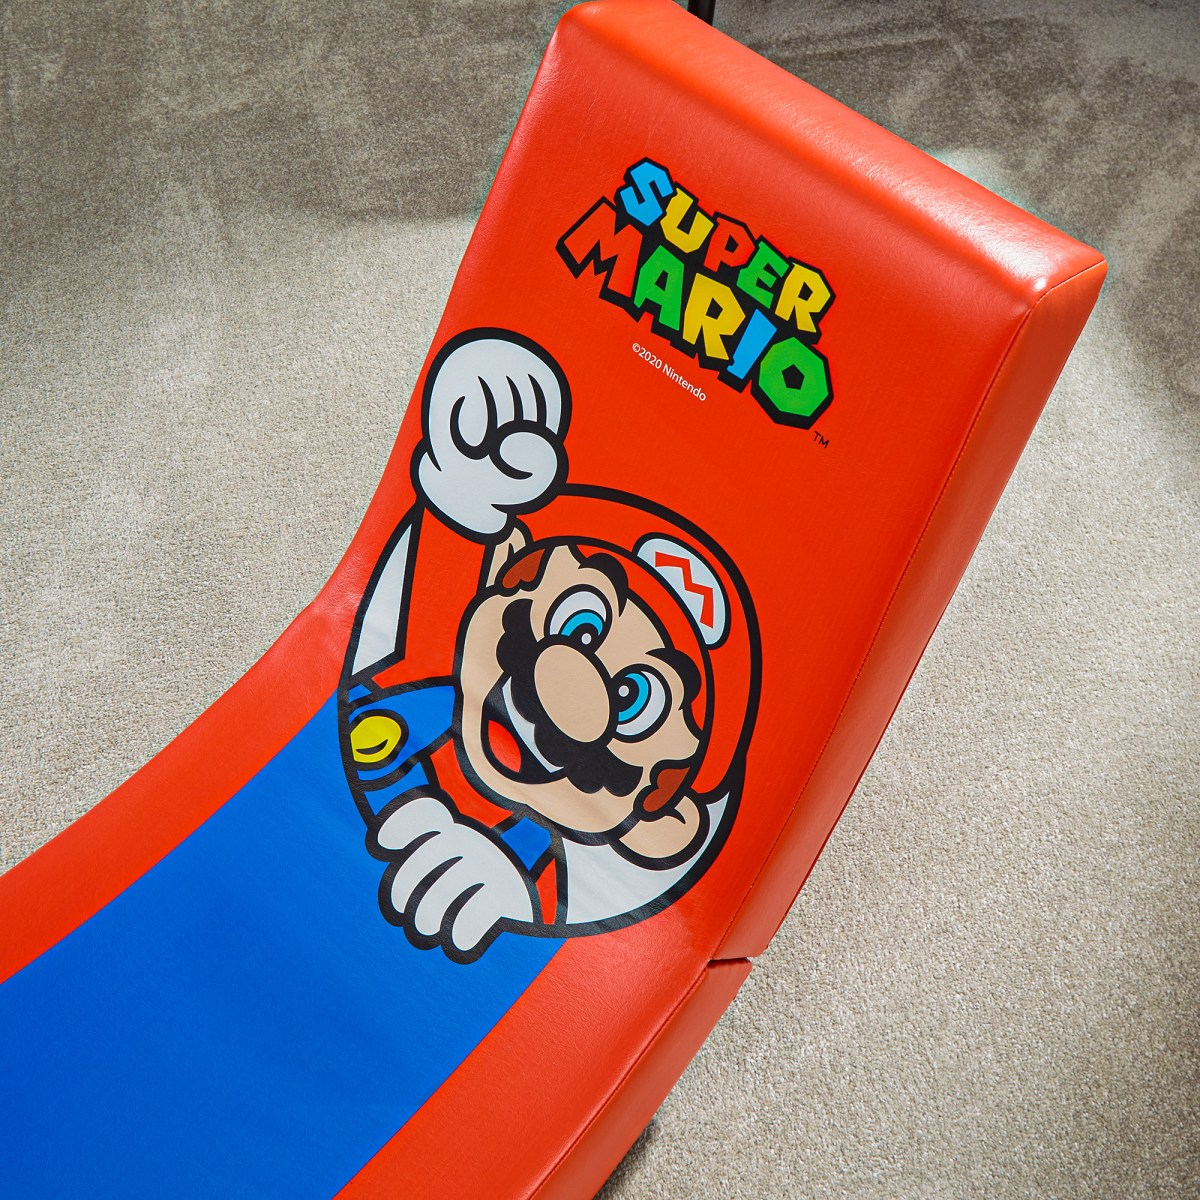 If you are a fan of Nintendo surely this is the thing that you need in your room